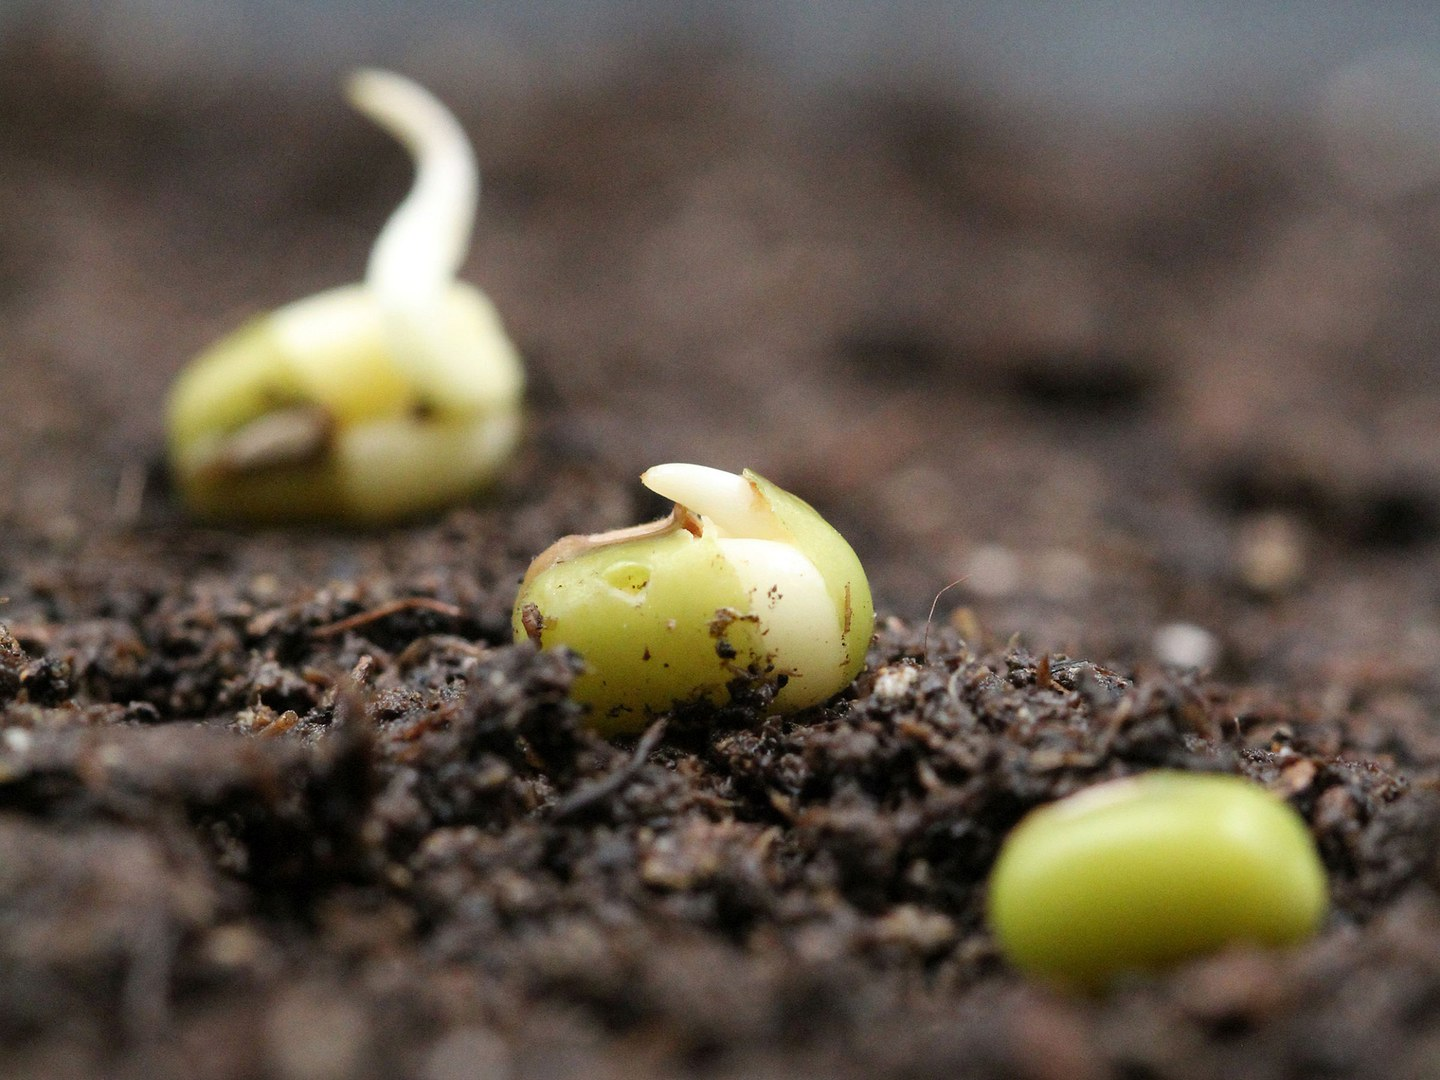 Bild1-Mung-bean-seeds_by-Bettina-Richter-3x4.jpg